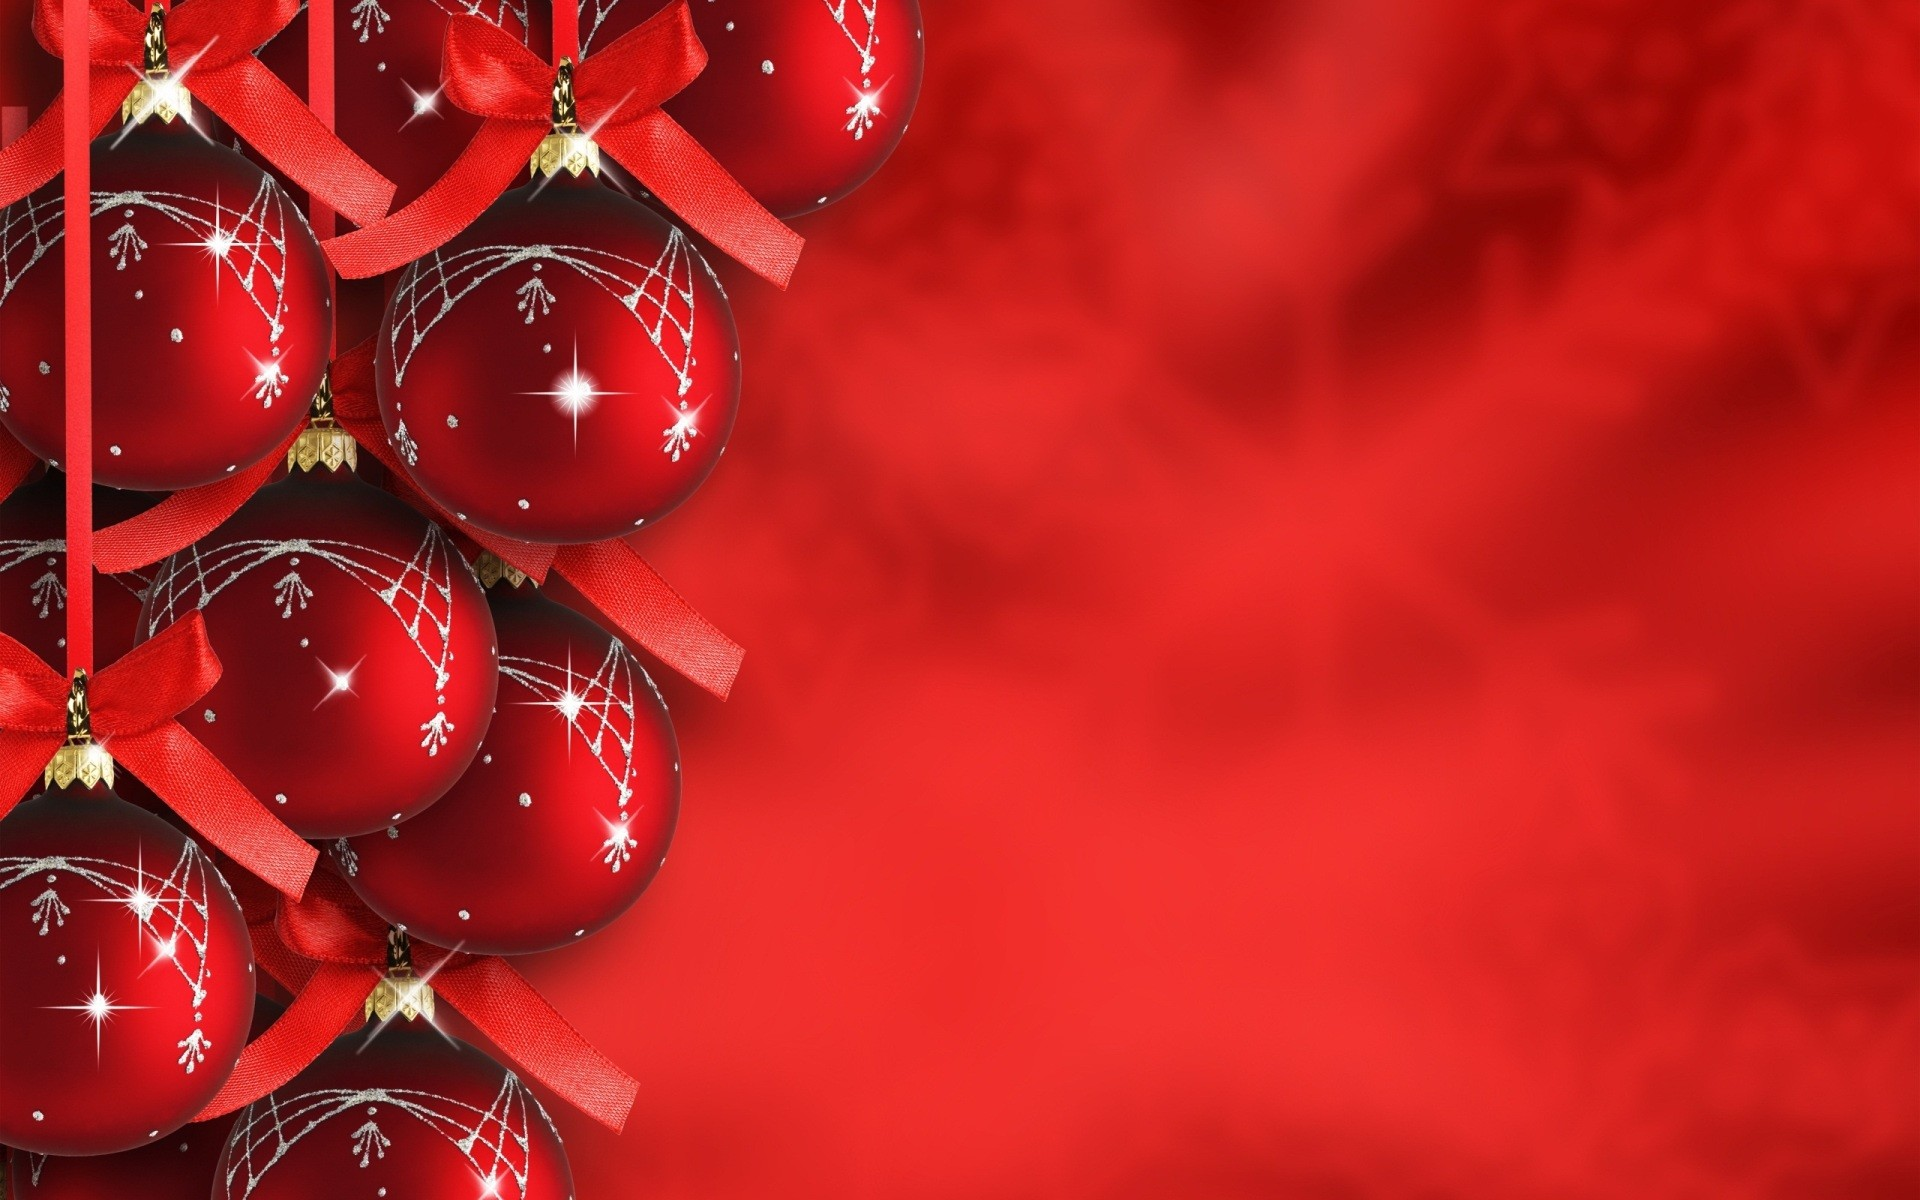 Christmas Background Gif Christmas Background For Pictures 40 Images